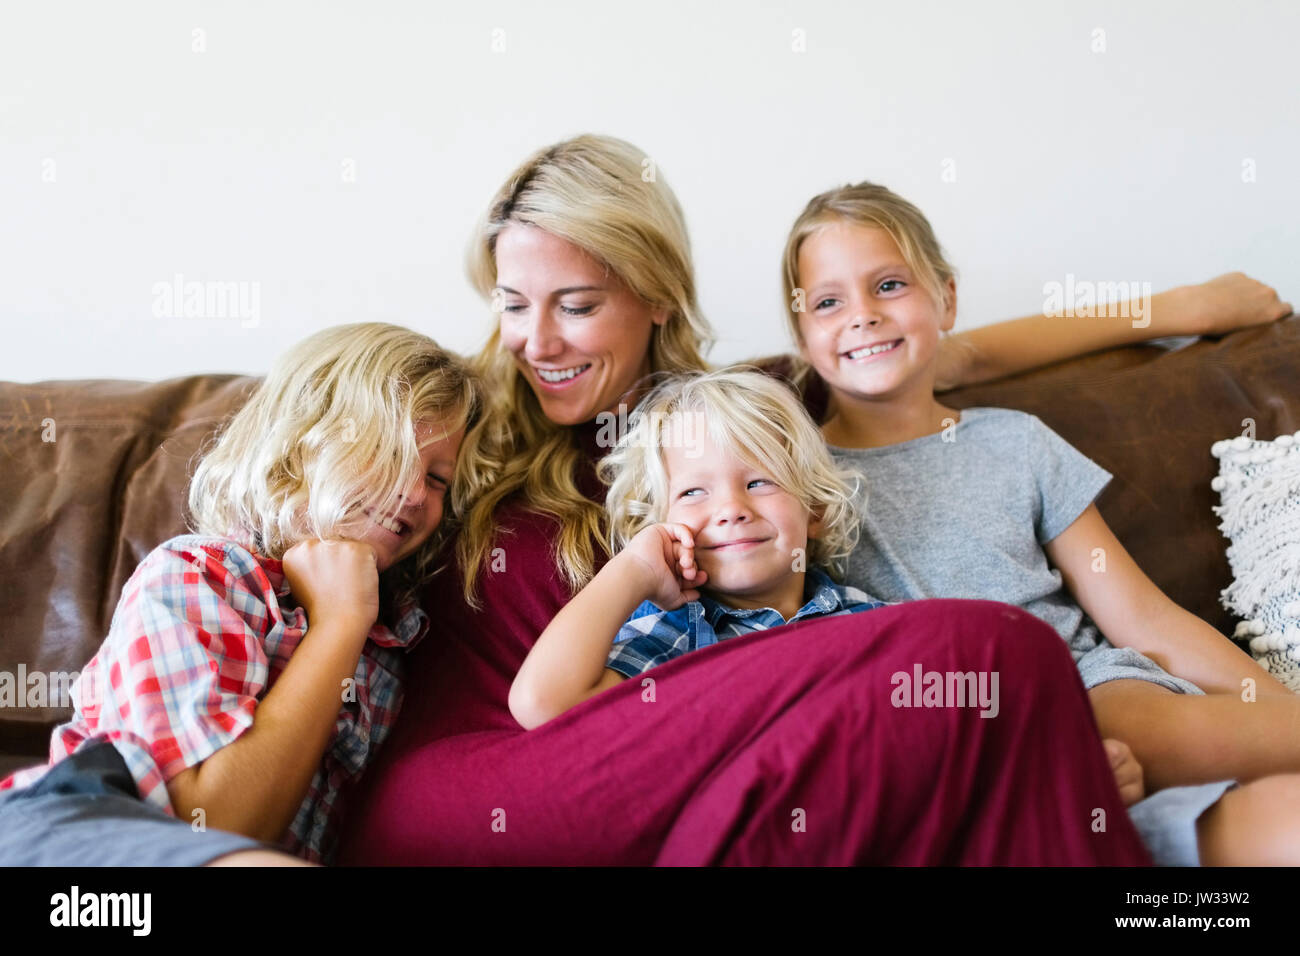 Mother and children (4-5, 6-7, 8-9) resting in living room - Stock Image